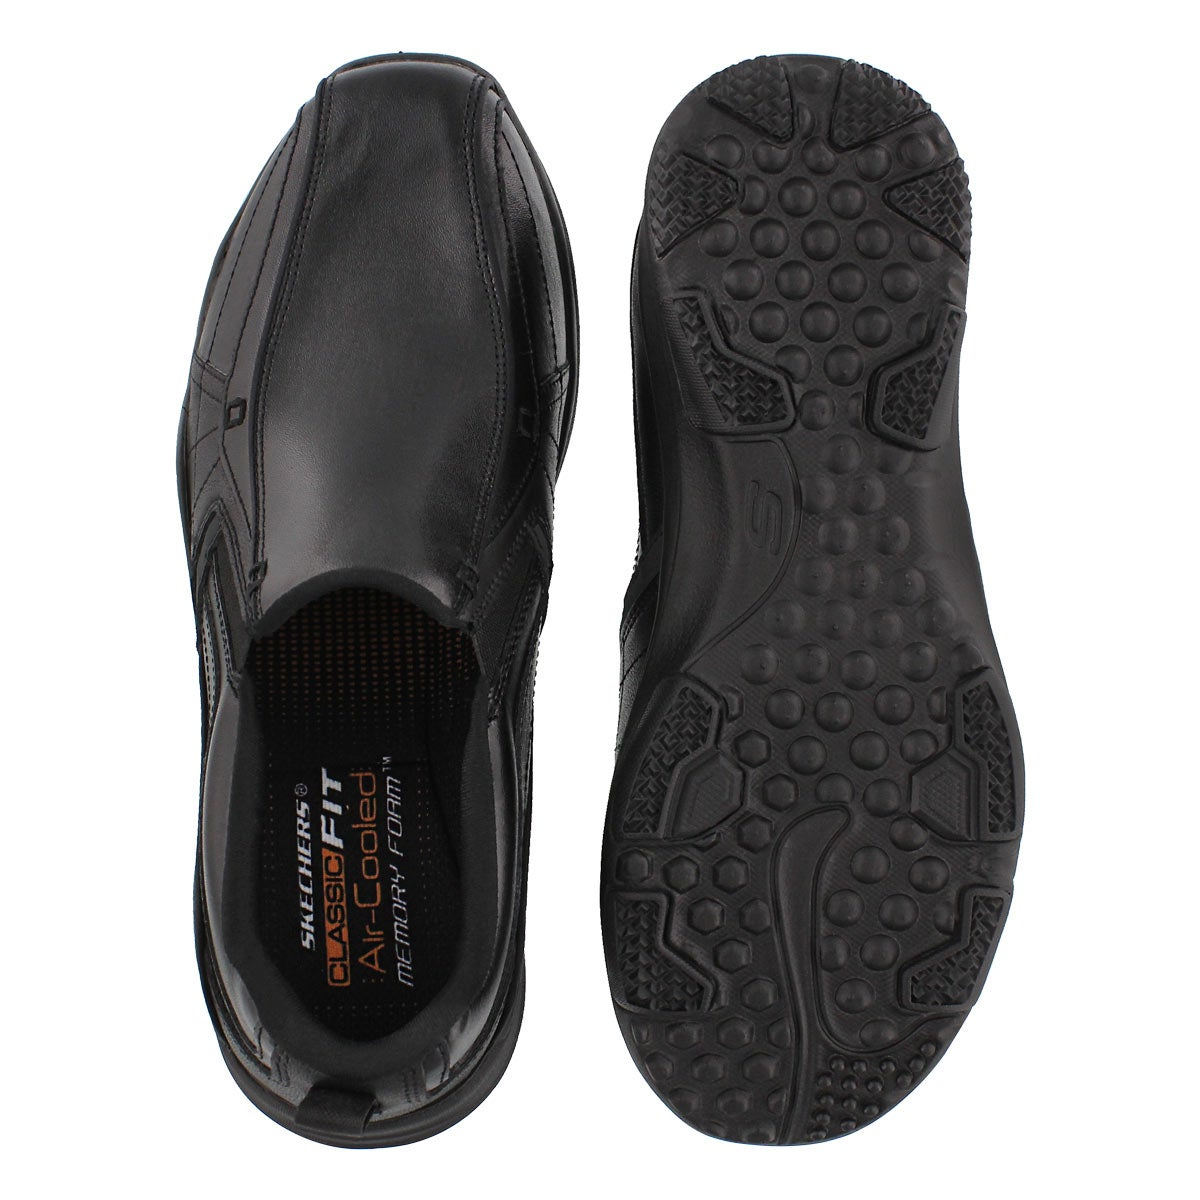 Mns Larson Berto black slip on shoe